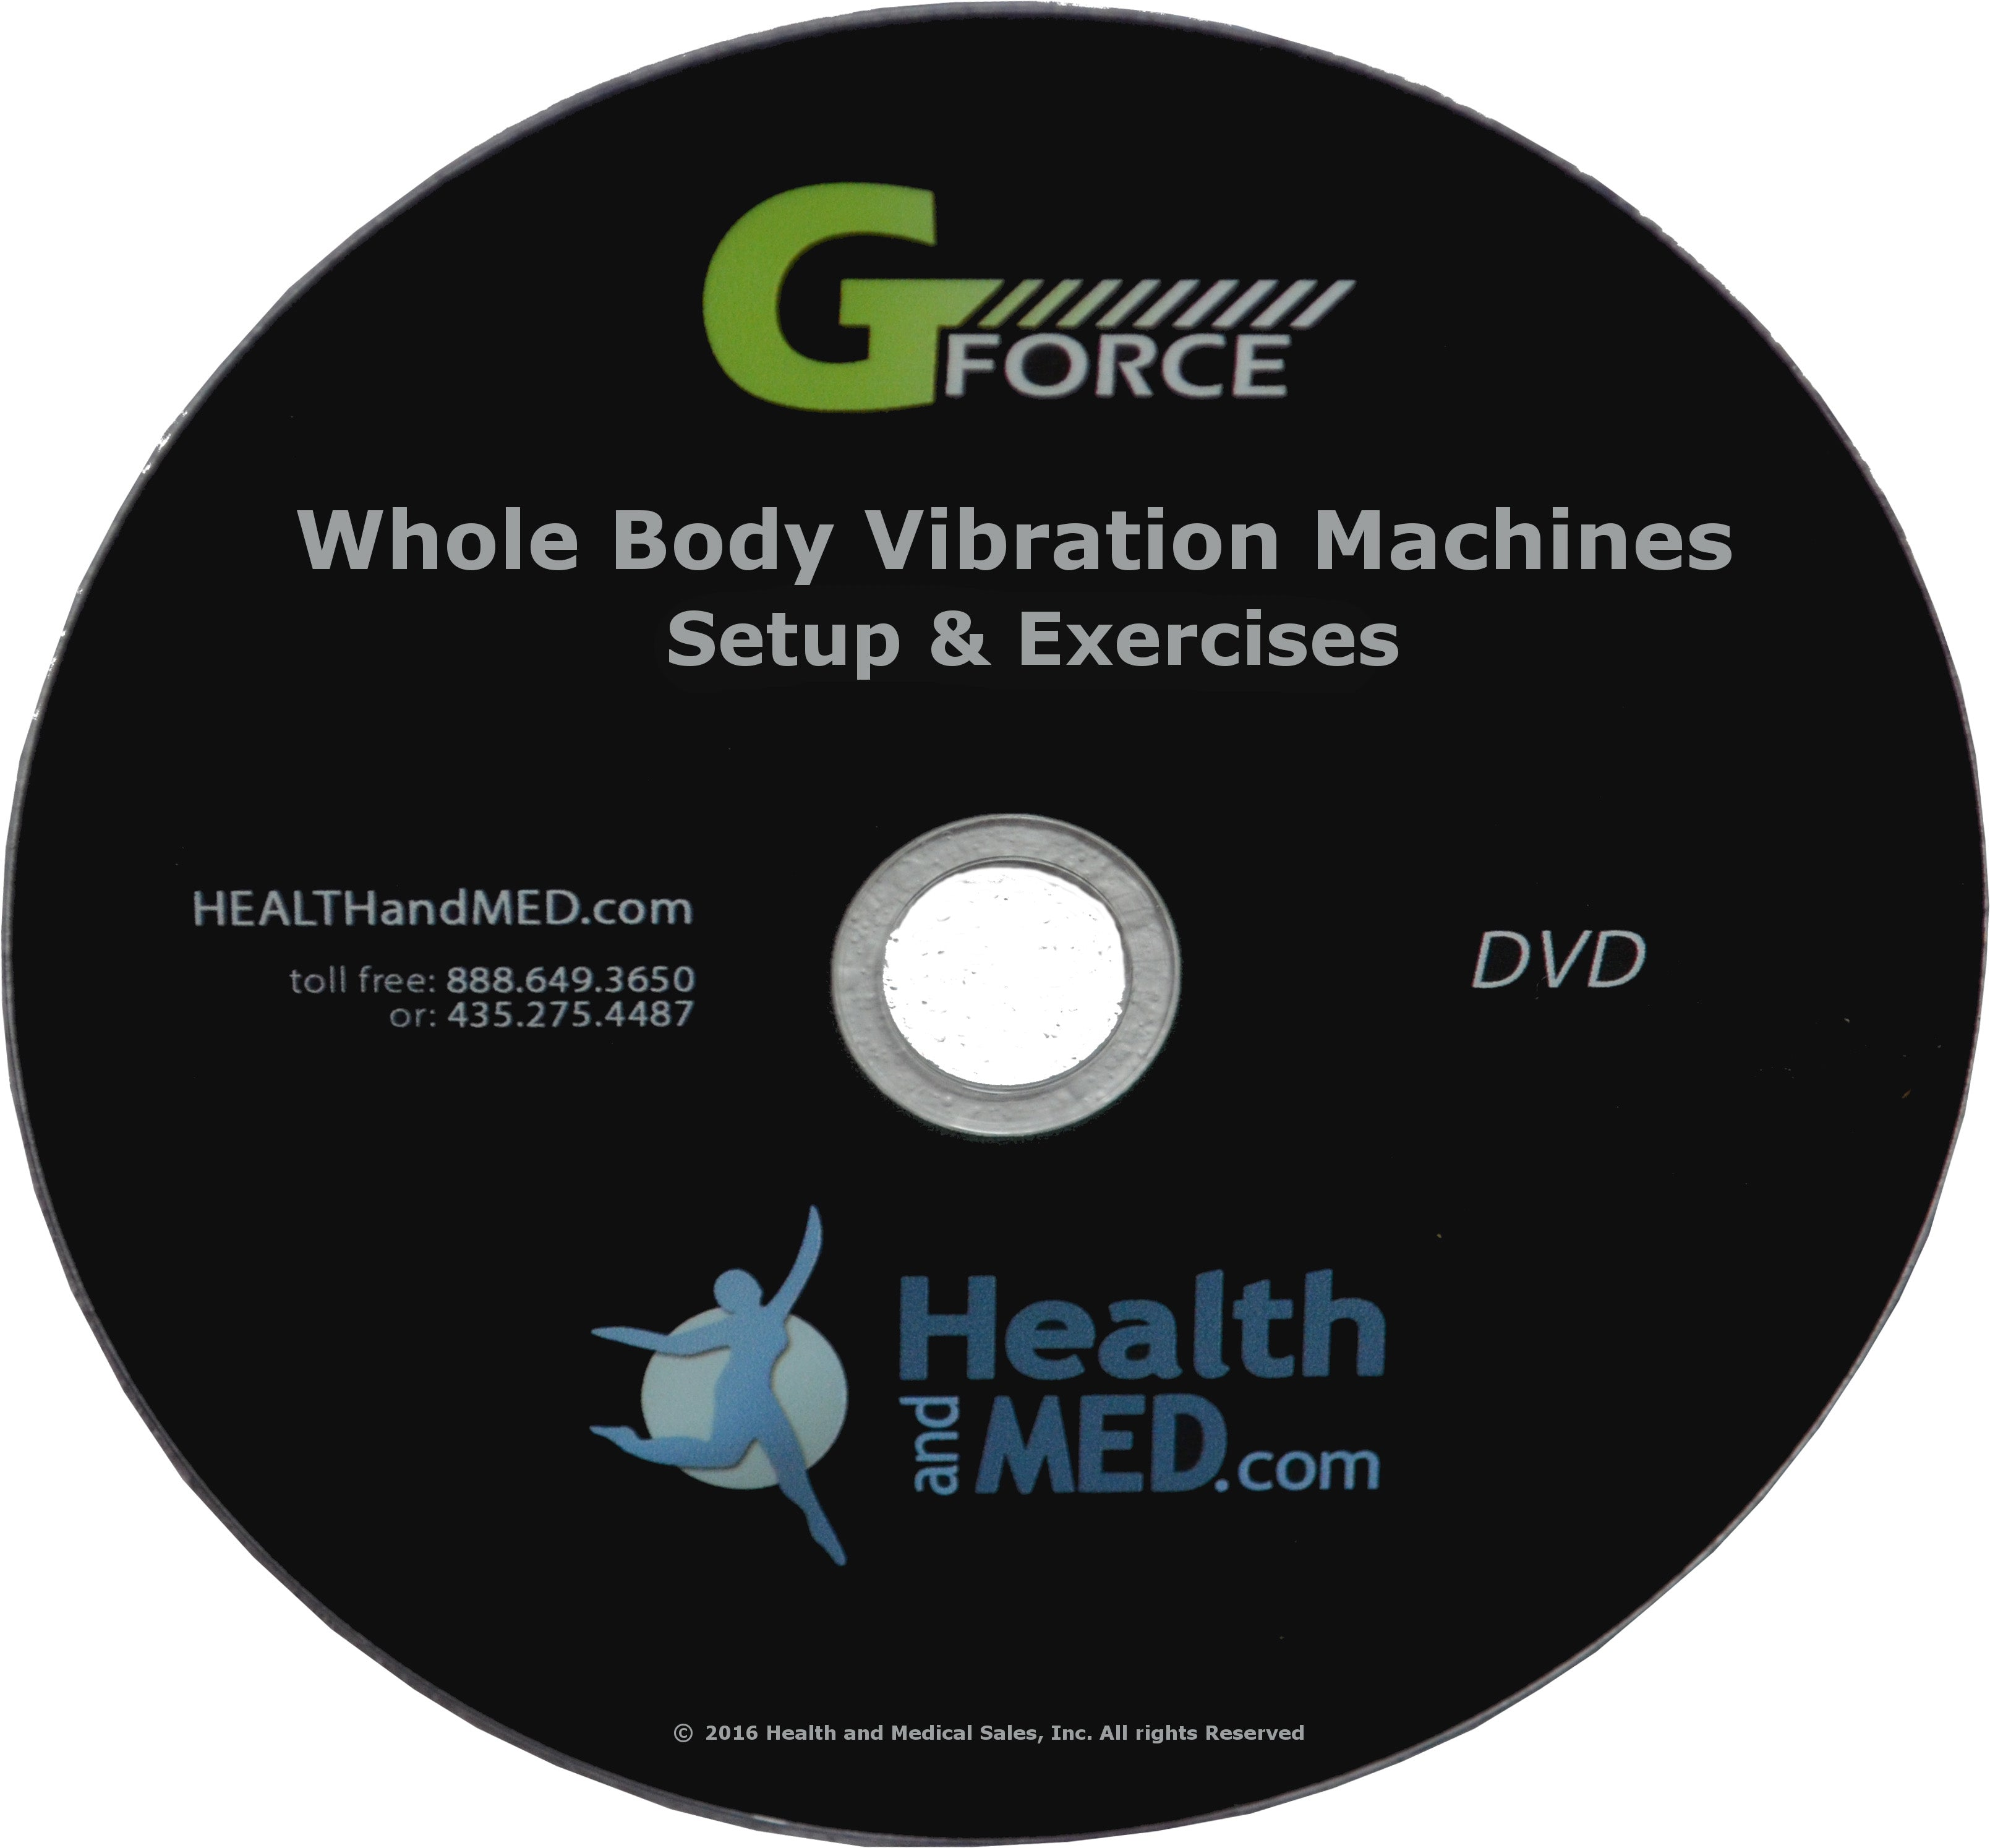 GForce Fold - 1500W Dual Motor Whole Body Vibration Exercise Machine (REFURBISHED)